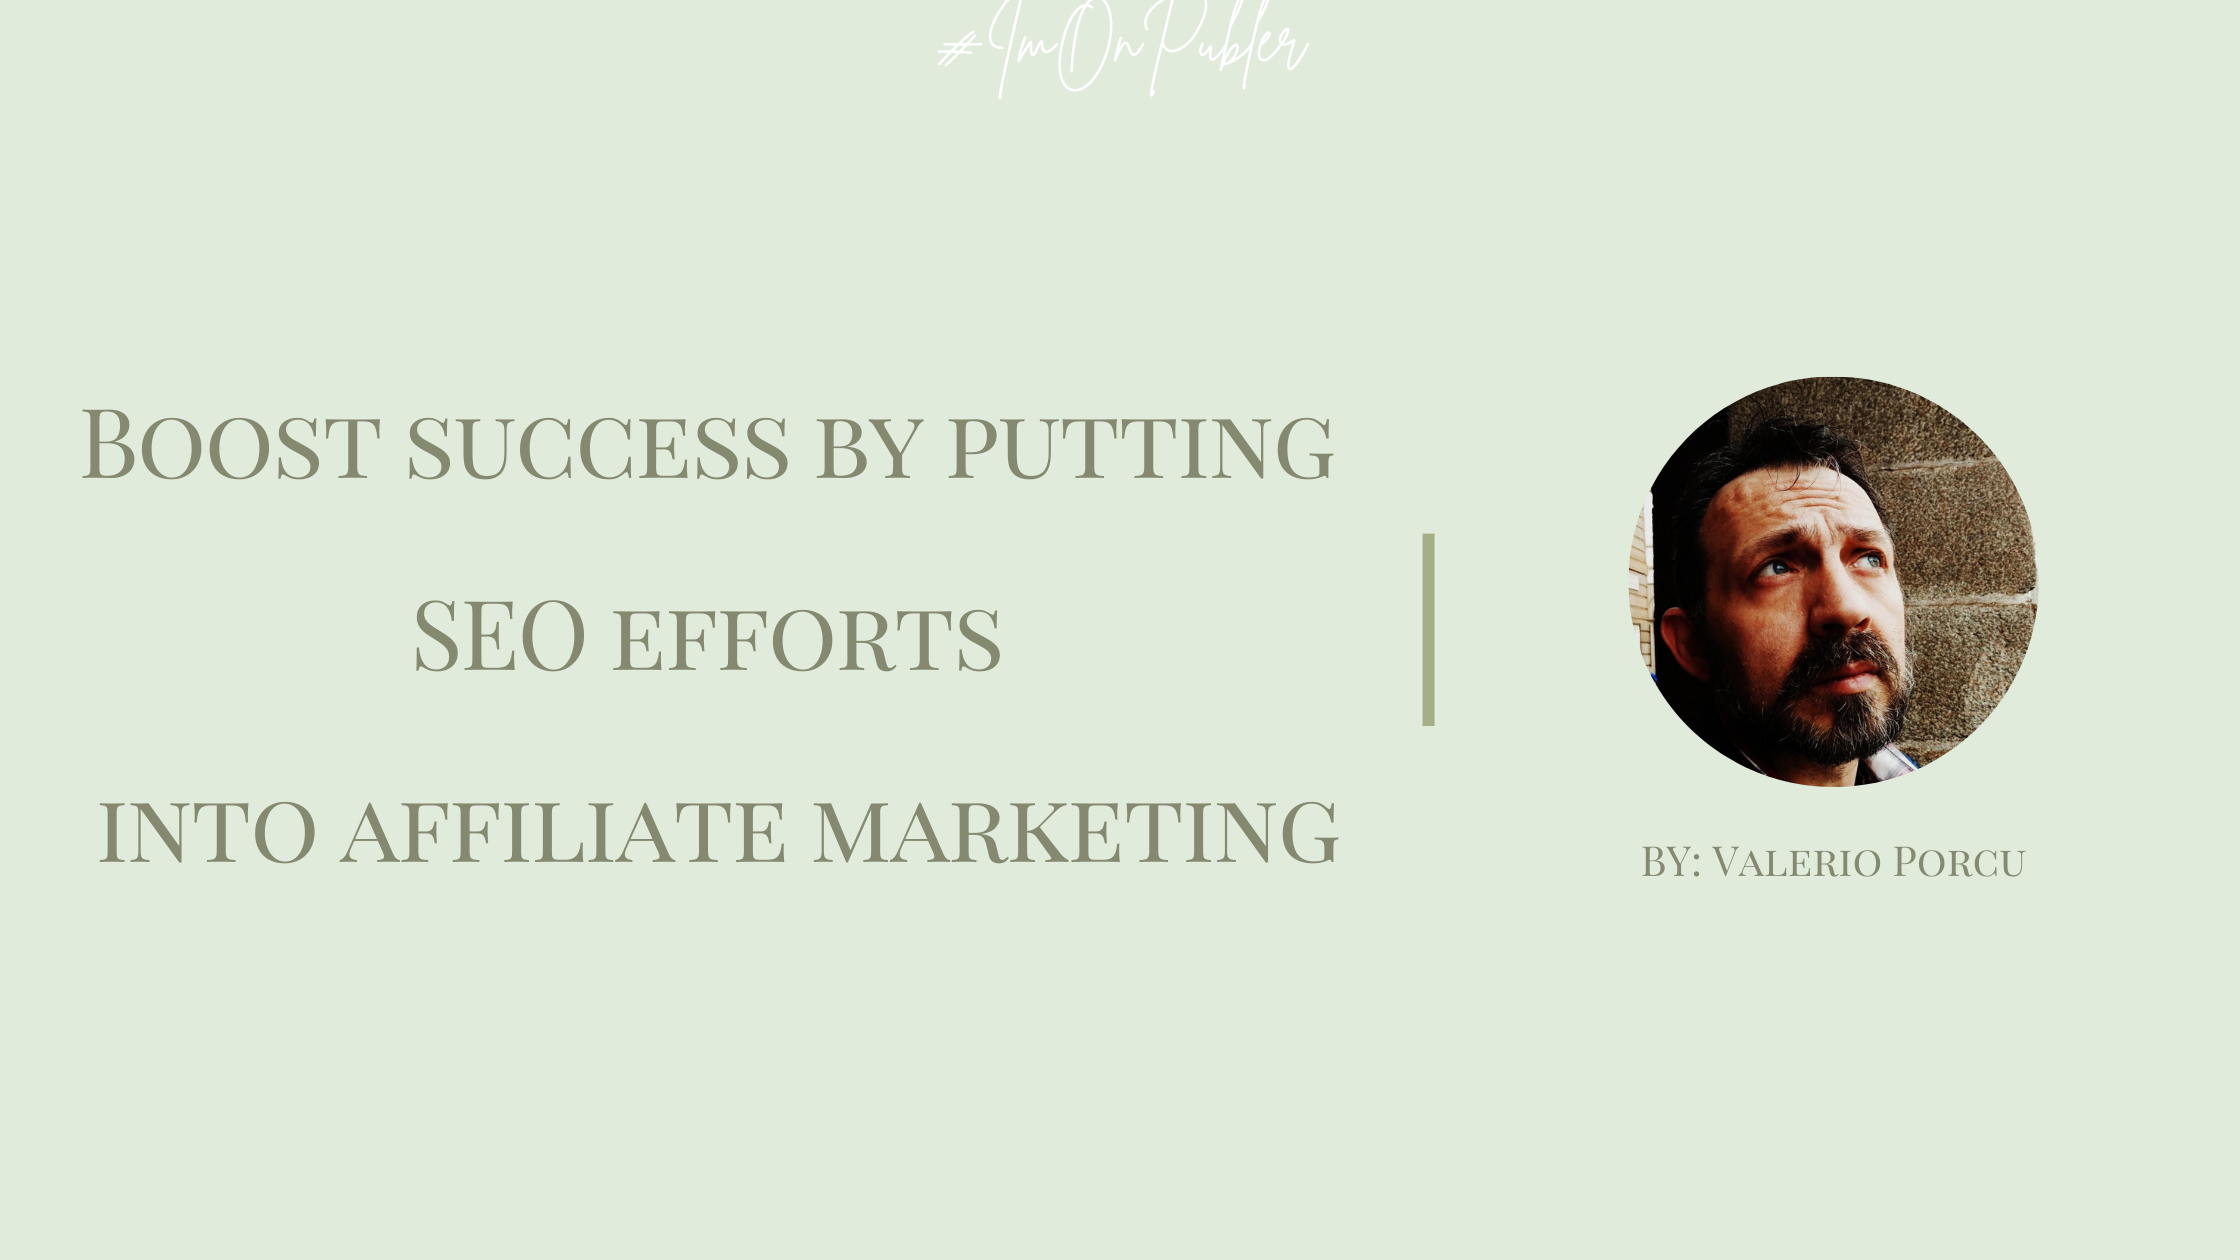 Boost Success by putting SEO Efforts into Affiliate Marketing